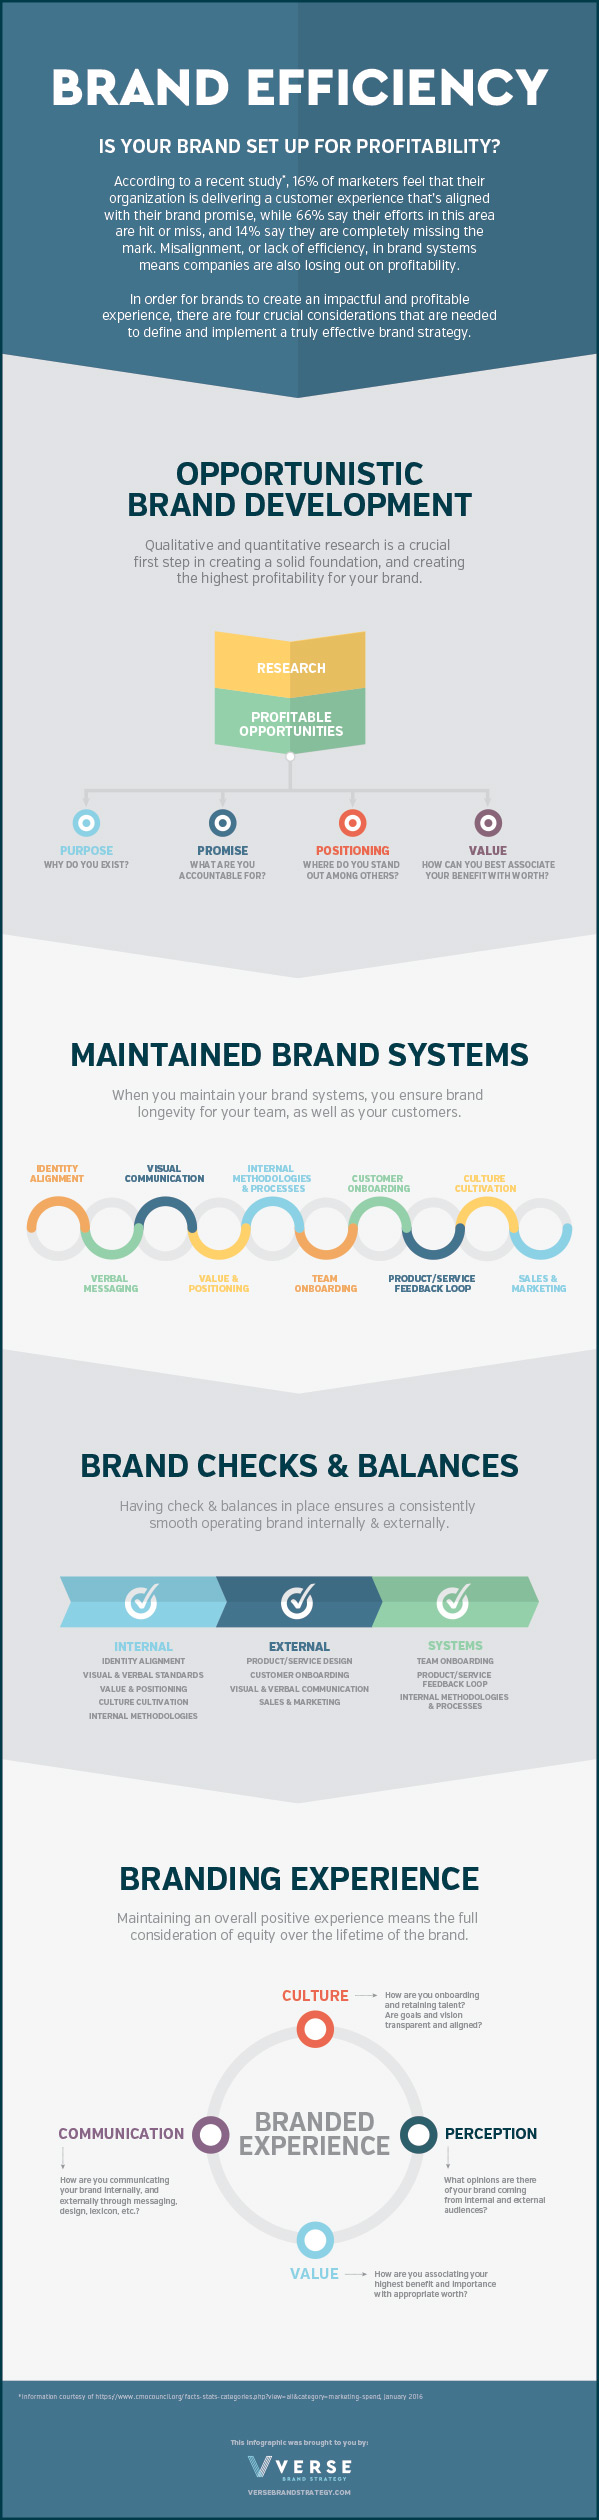 Brand Efficiency Systems Infographic